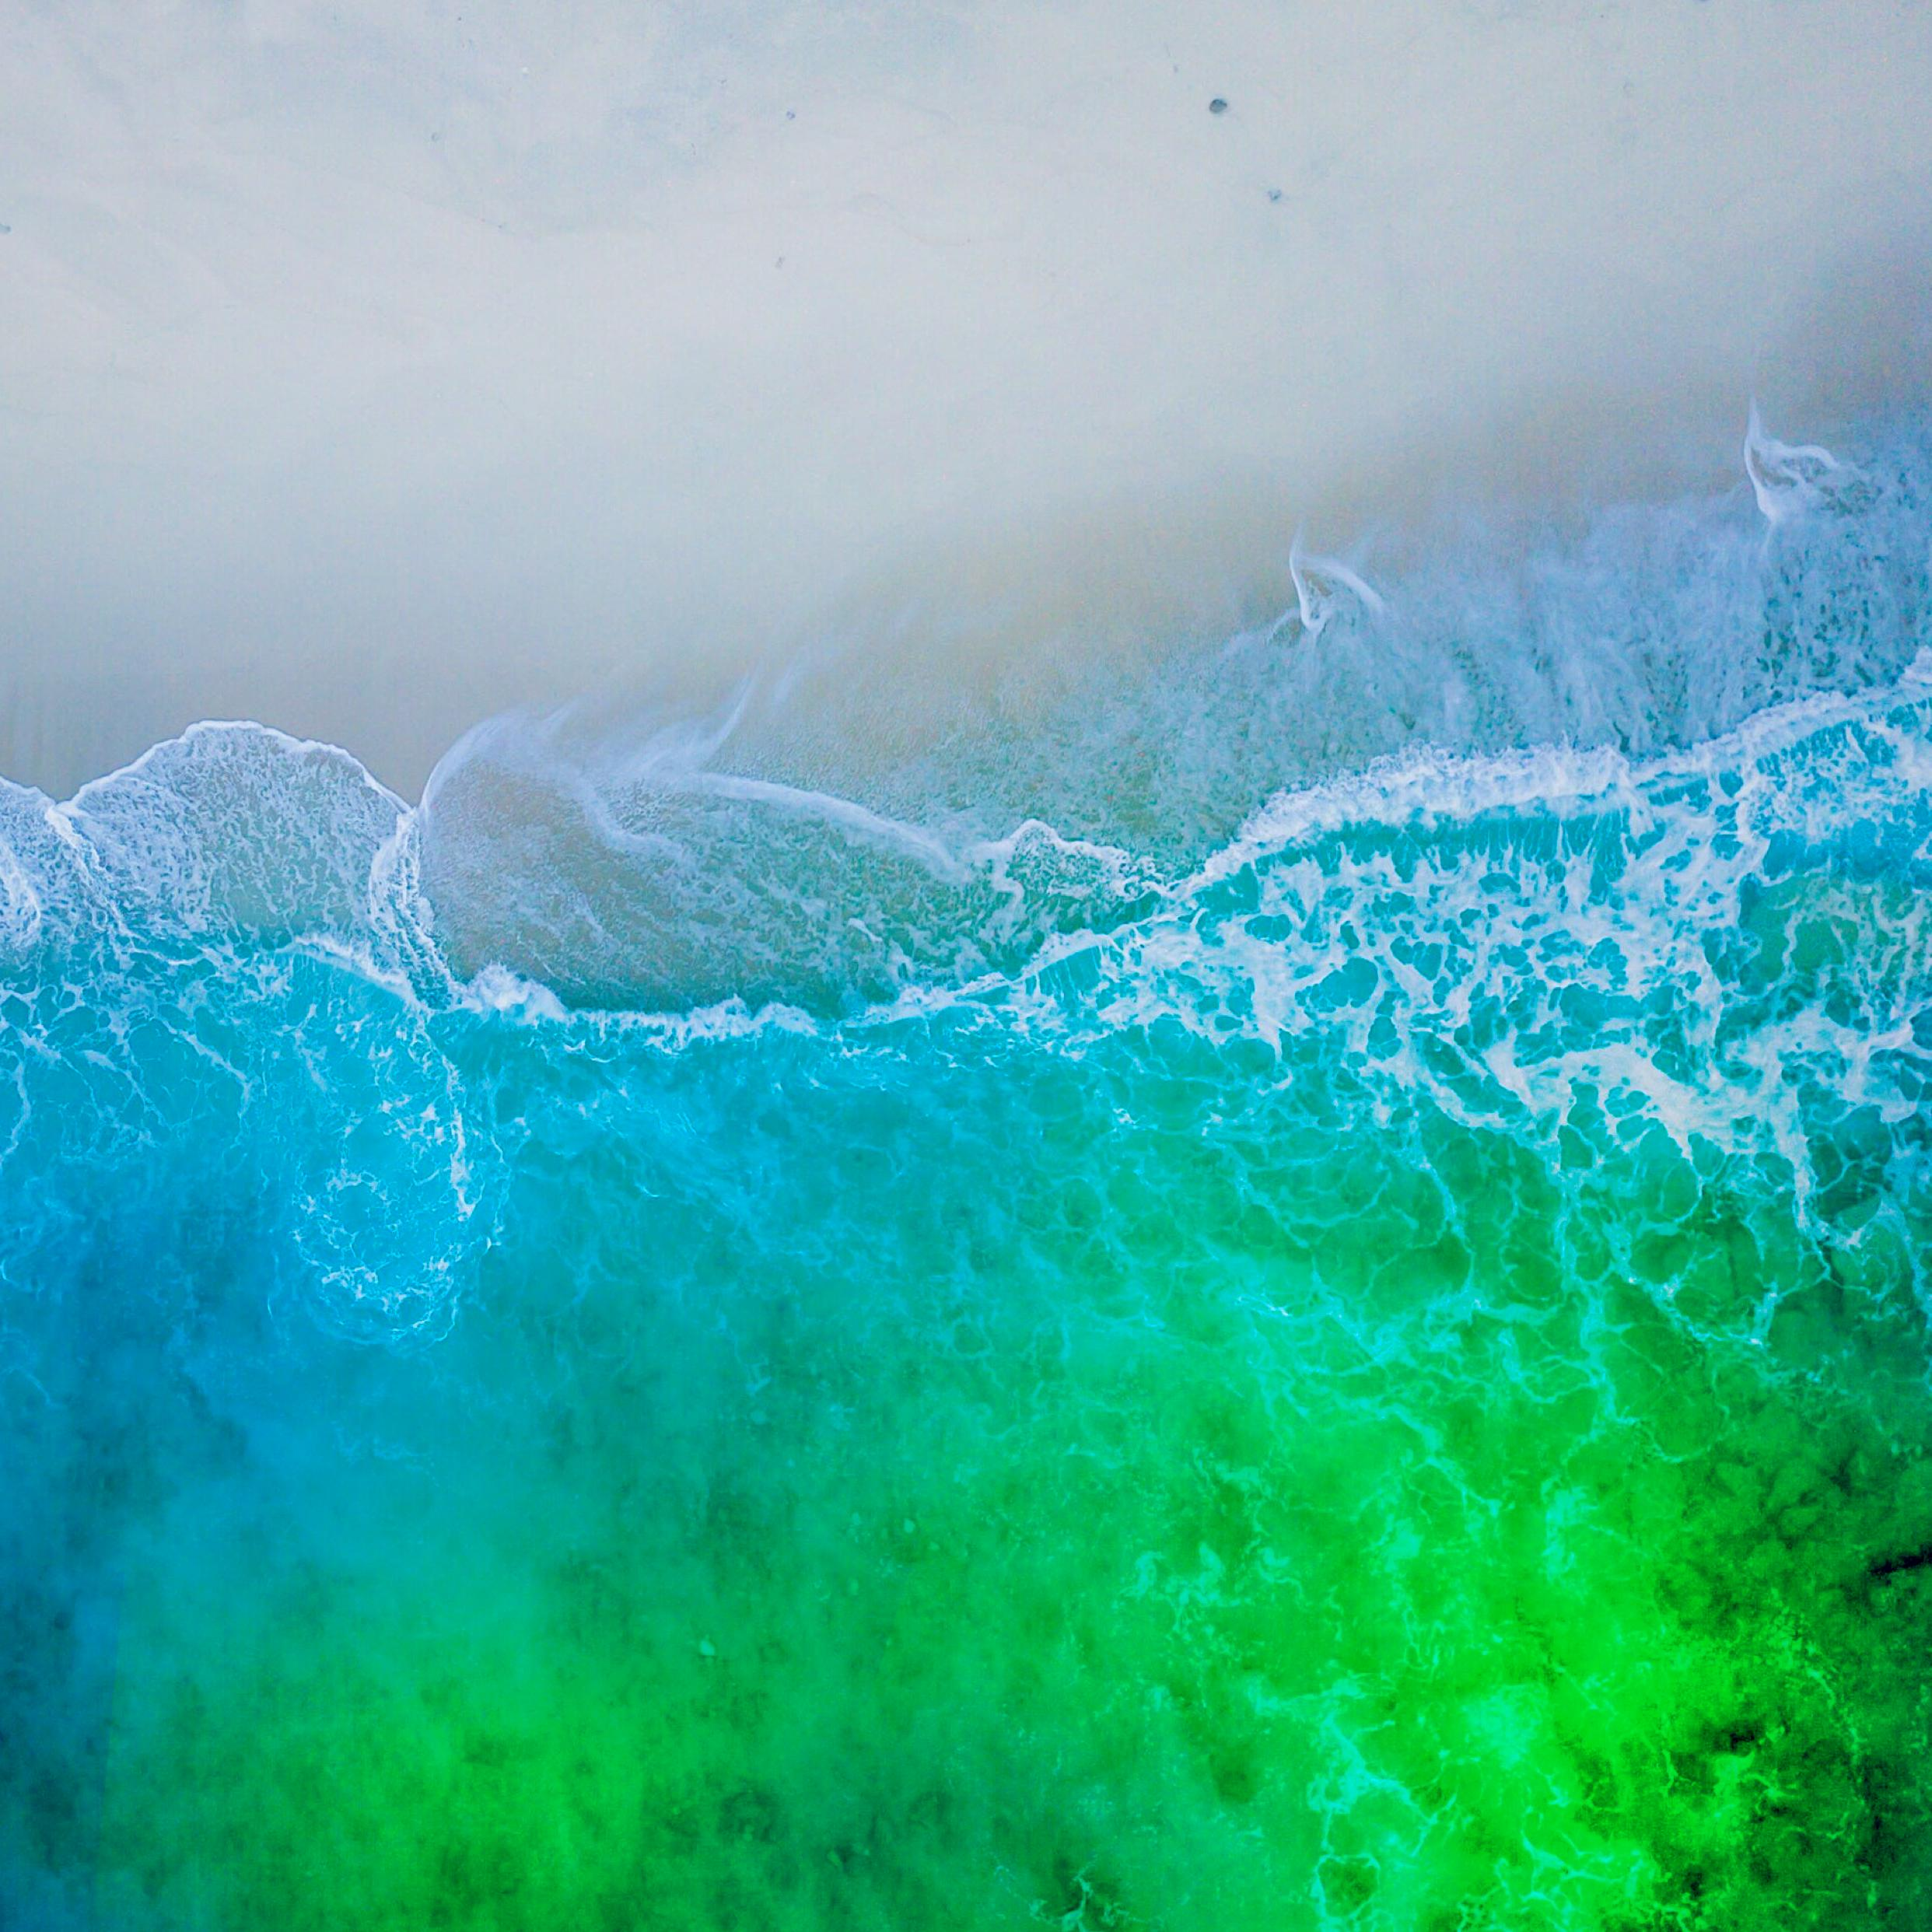 Ios 11 Wallpapers Top Free Ios 11 Backgrounds Wallpaperaccess